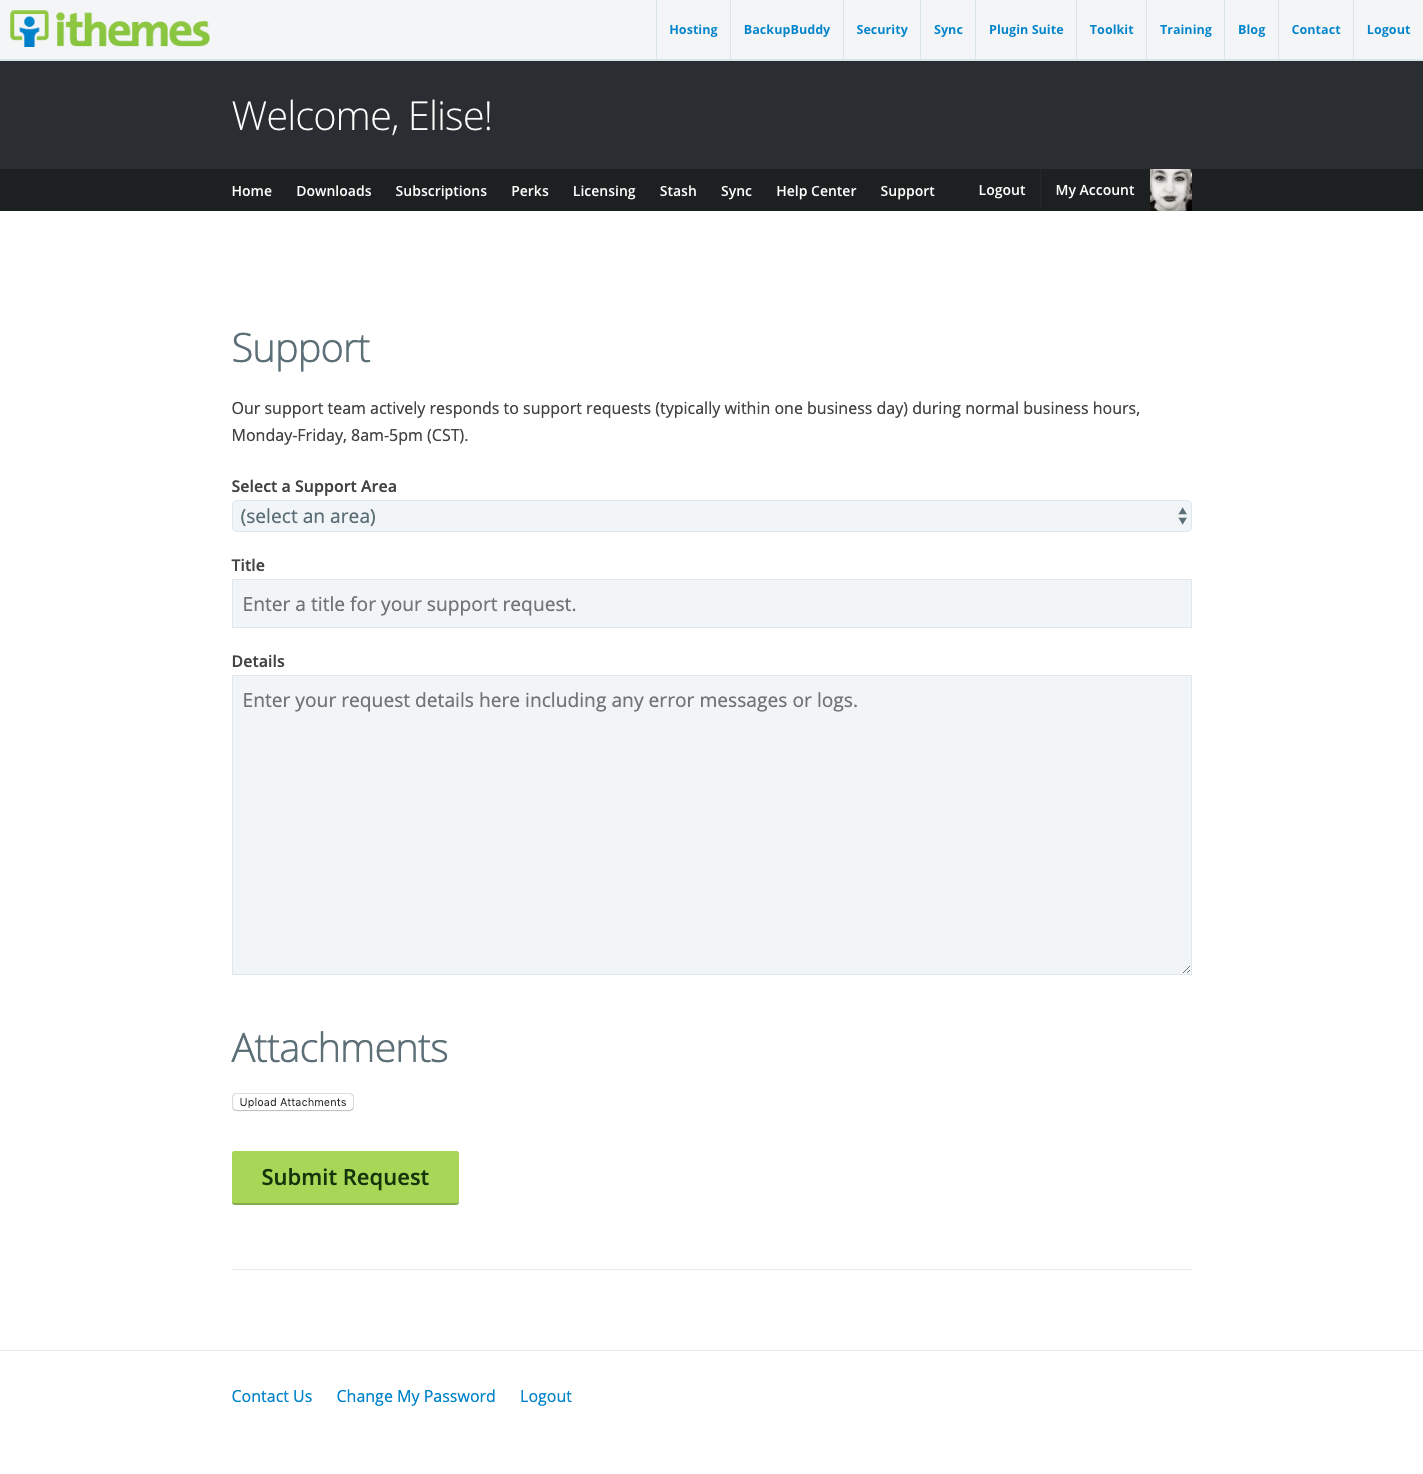 screencapture-members-ithemes-panel-helpdesk-php-2019-10-02-08_34_21.png